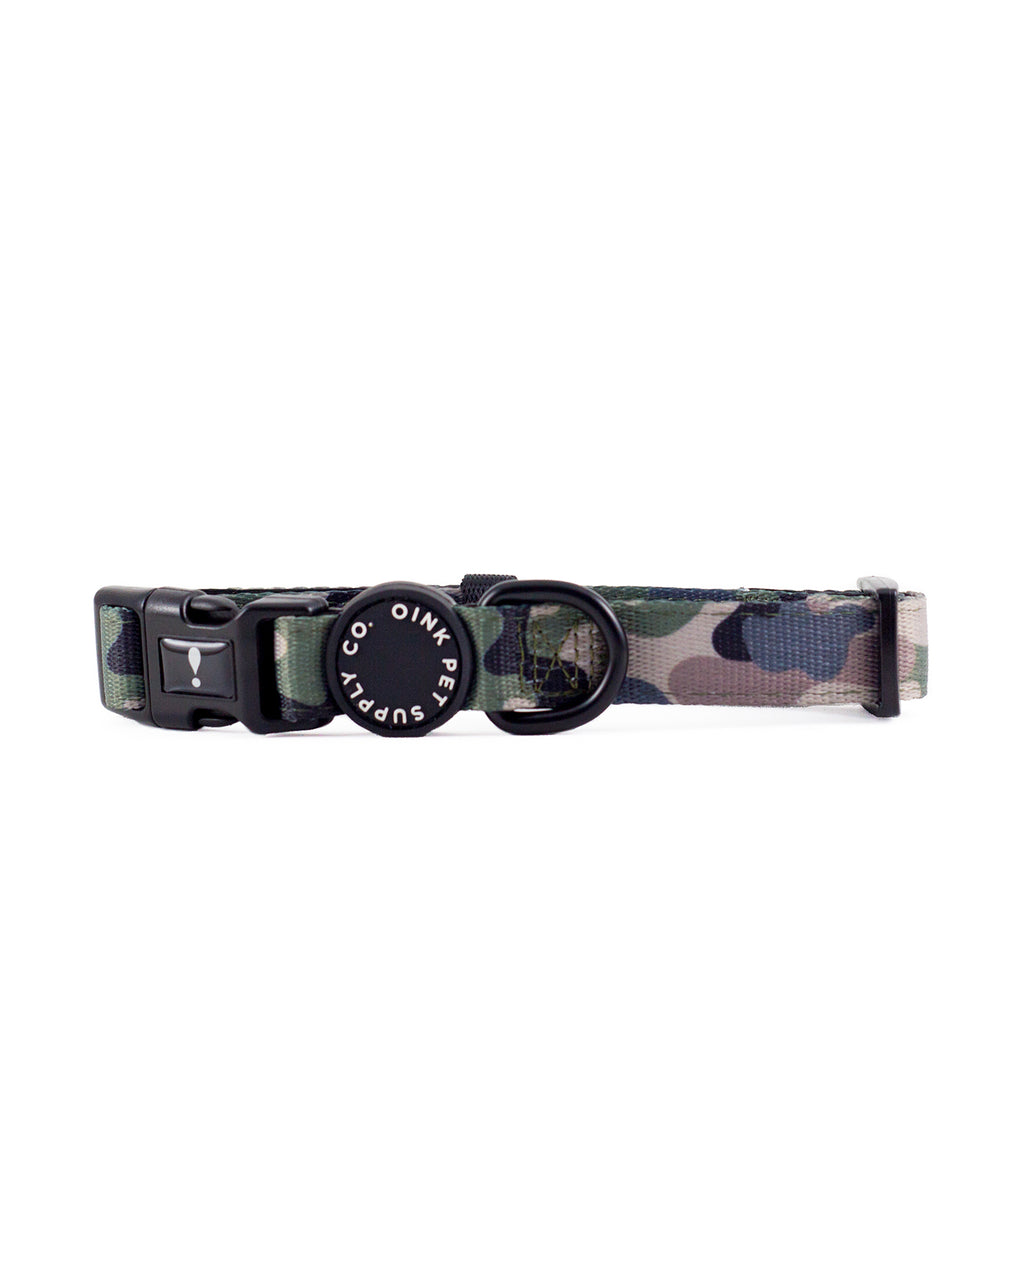 oink pet supply comfort collar -toughen up